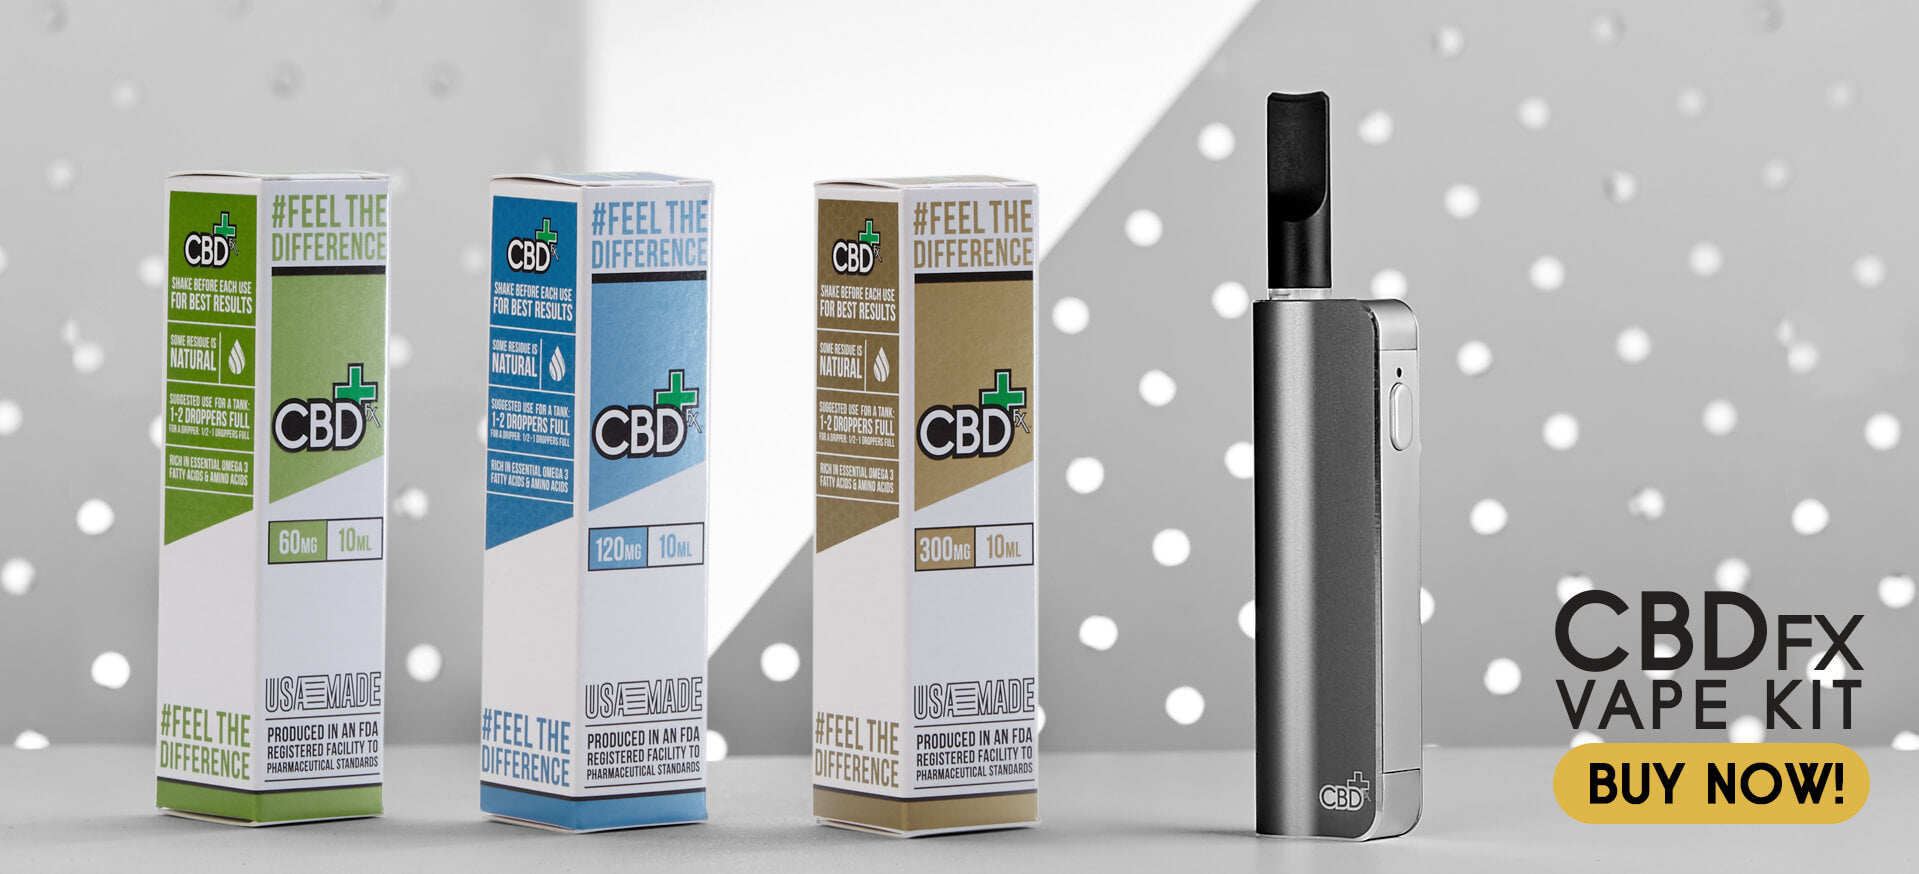 CBD Vape Kit by CBDfx